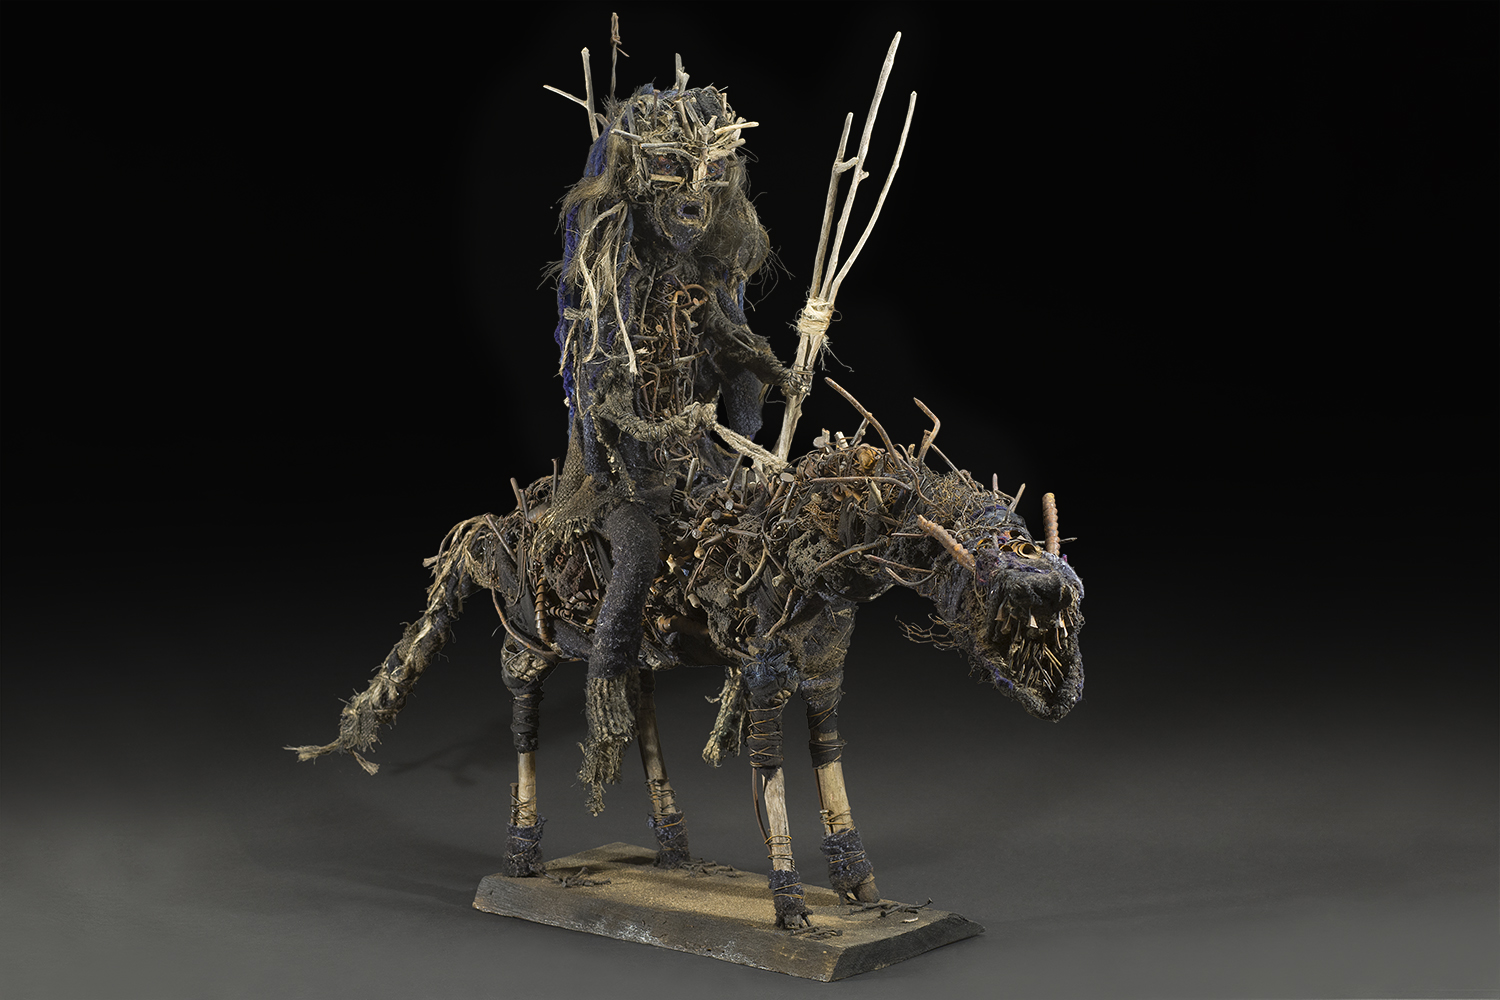 Sylvain and Ghyslaine Staelens,    Cavalier  , 2015, Wood, metal, cloth, found objects, 35 x 47 x 13 inches, 88.9 x 119.4 x 33 cm, GSS 37